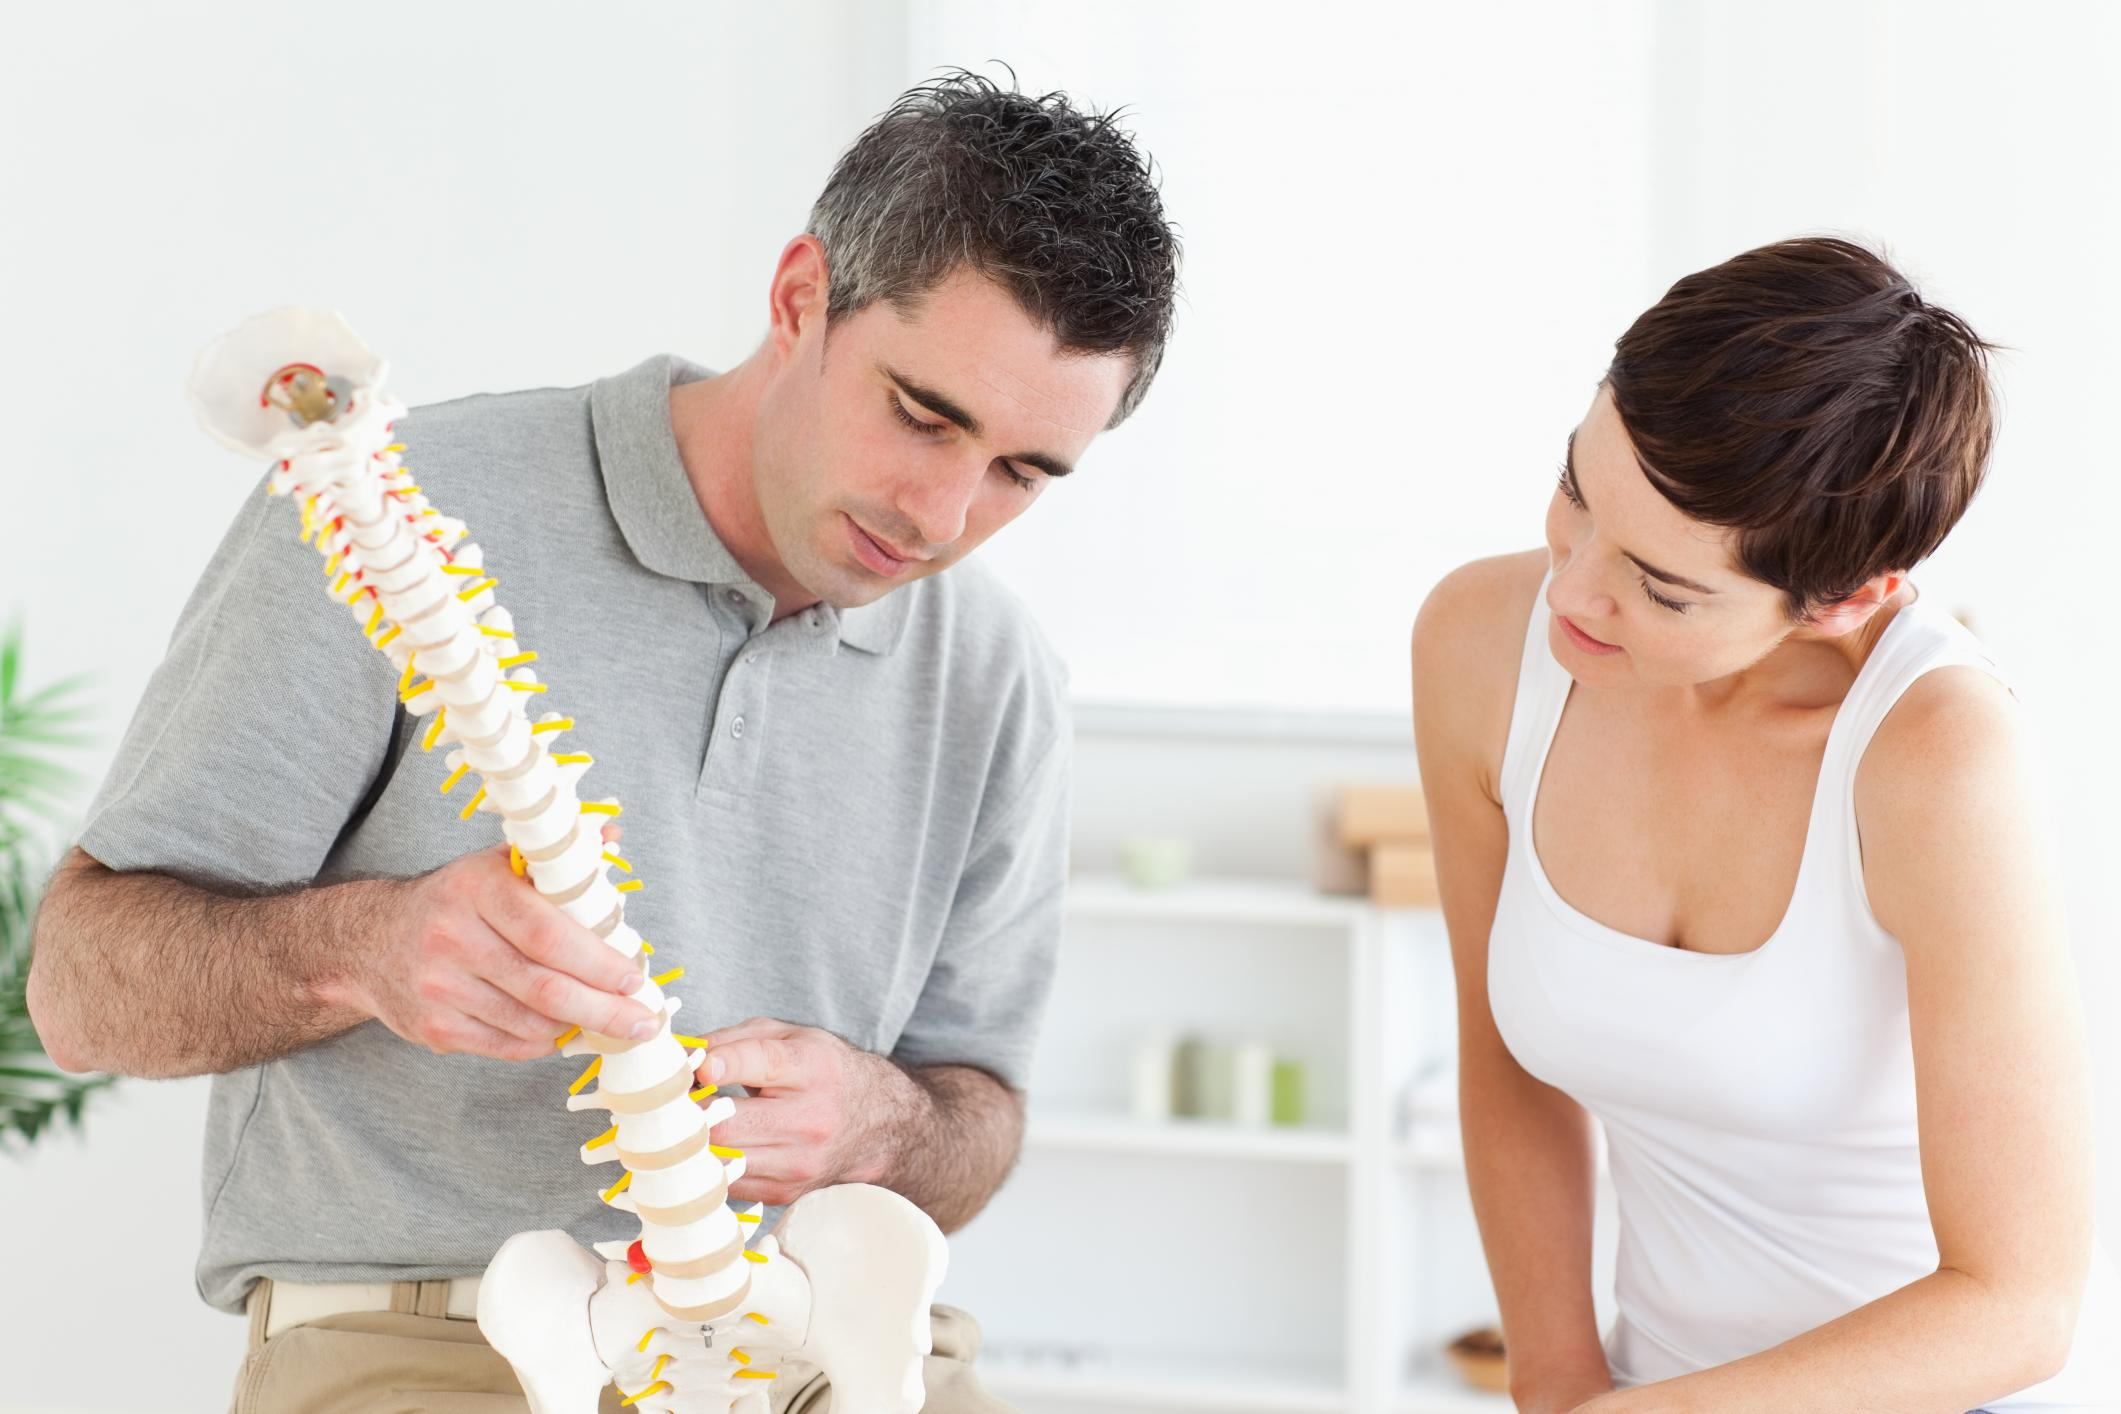 Spinal Adjustments and Chiropractic Services - Services